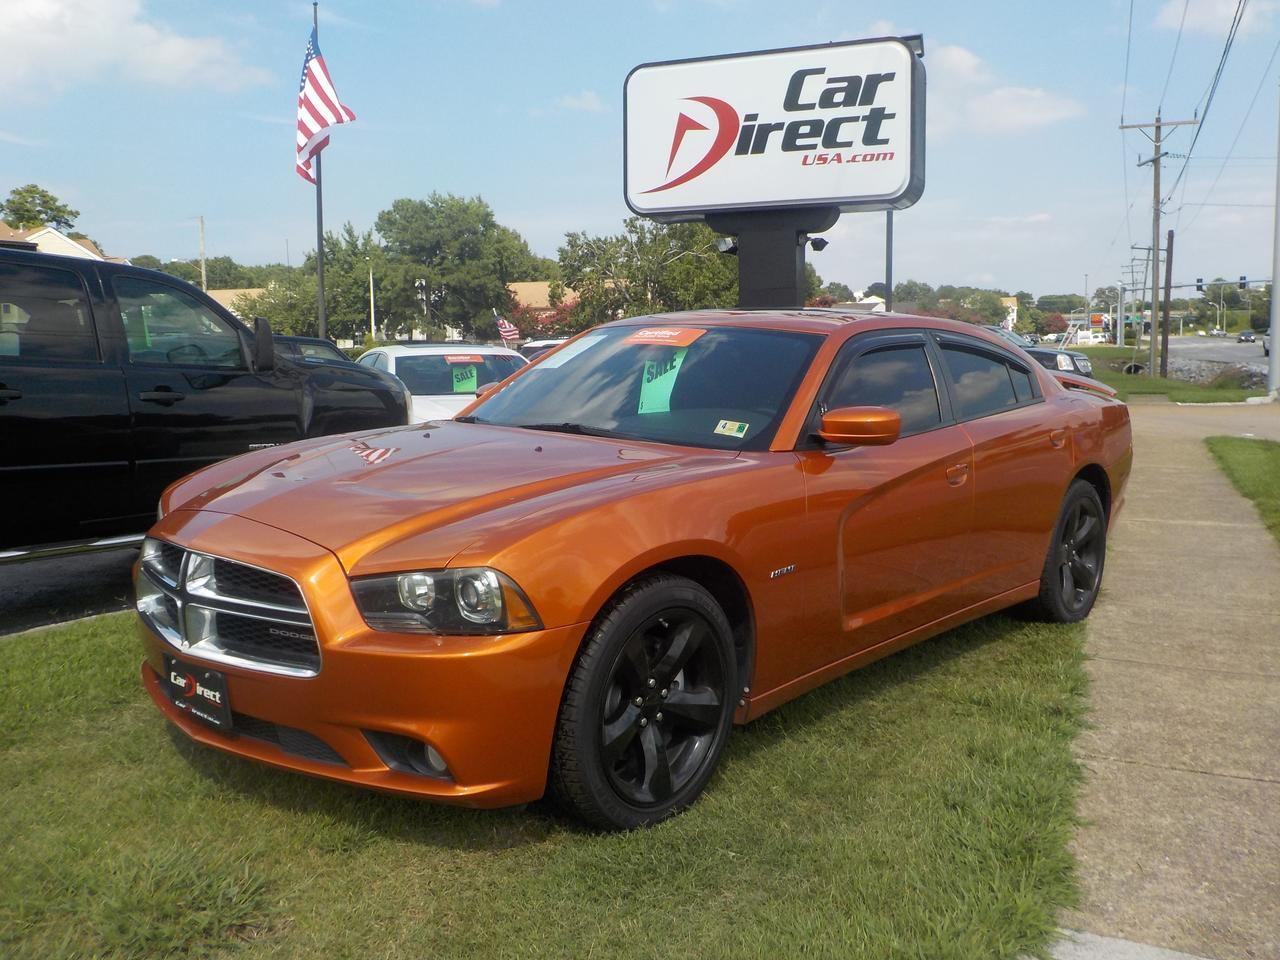 2011 Dodge Charger R T Hemi 57l V8 Buy Back Guarantee Warranty Infiniti Remote Start Navi Up Cam Sunroof Hot Car Virginia Beach Va 23864057